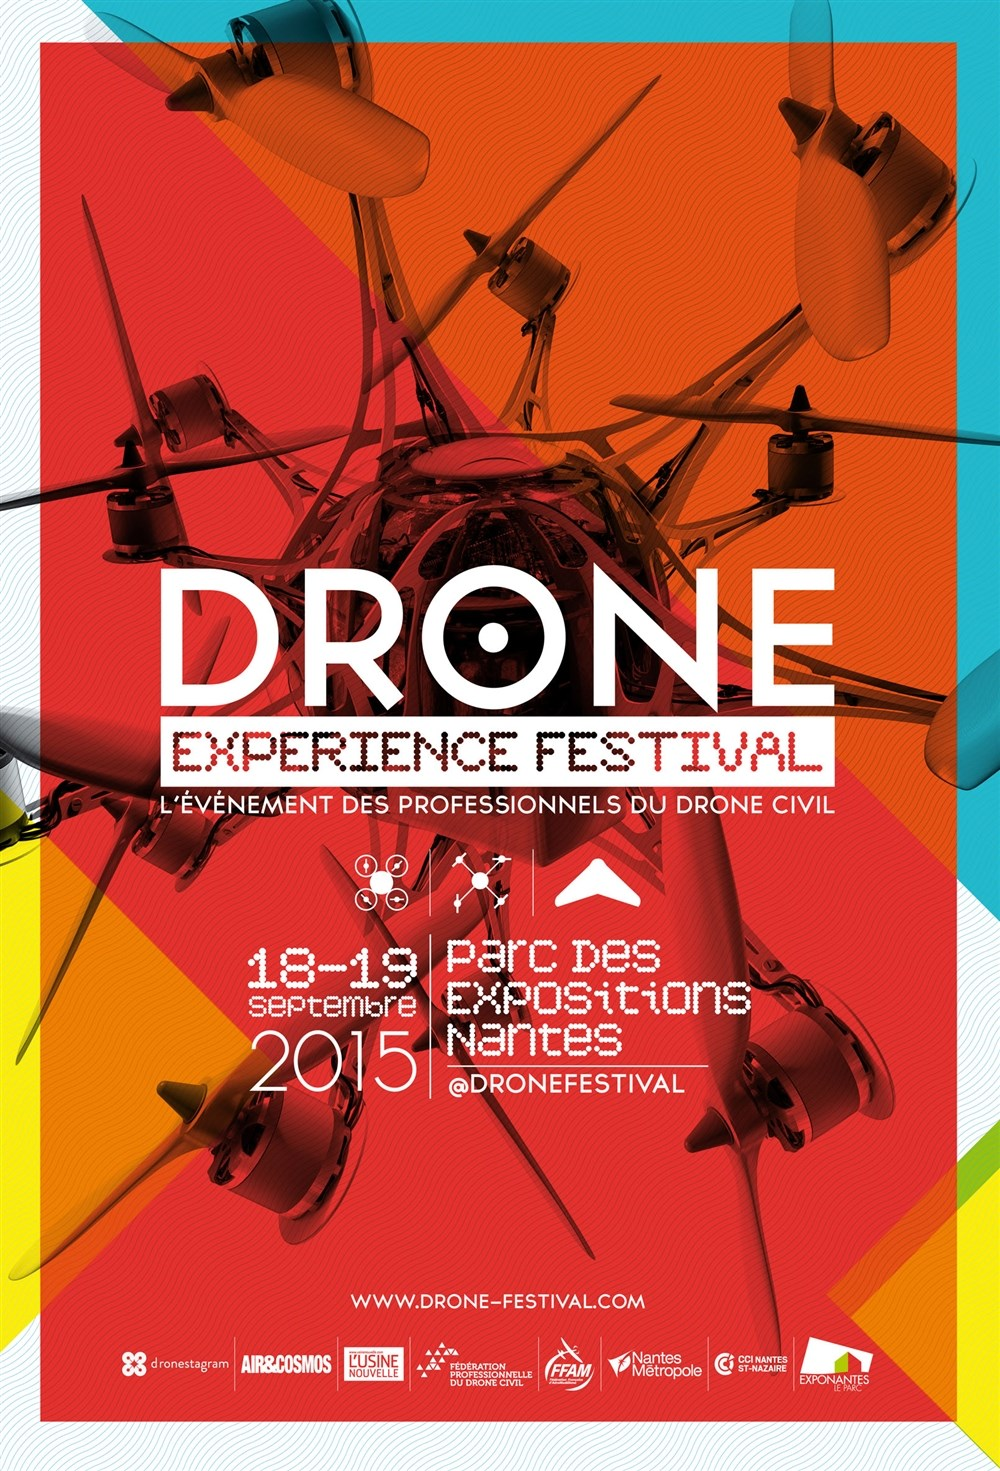 Drone experience festival Nantes